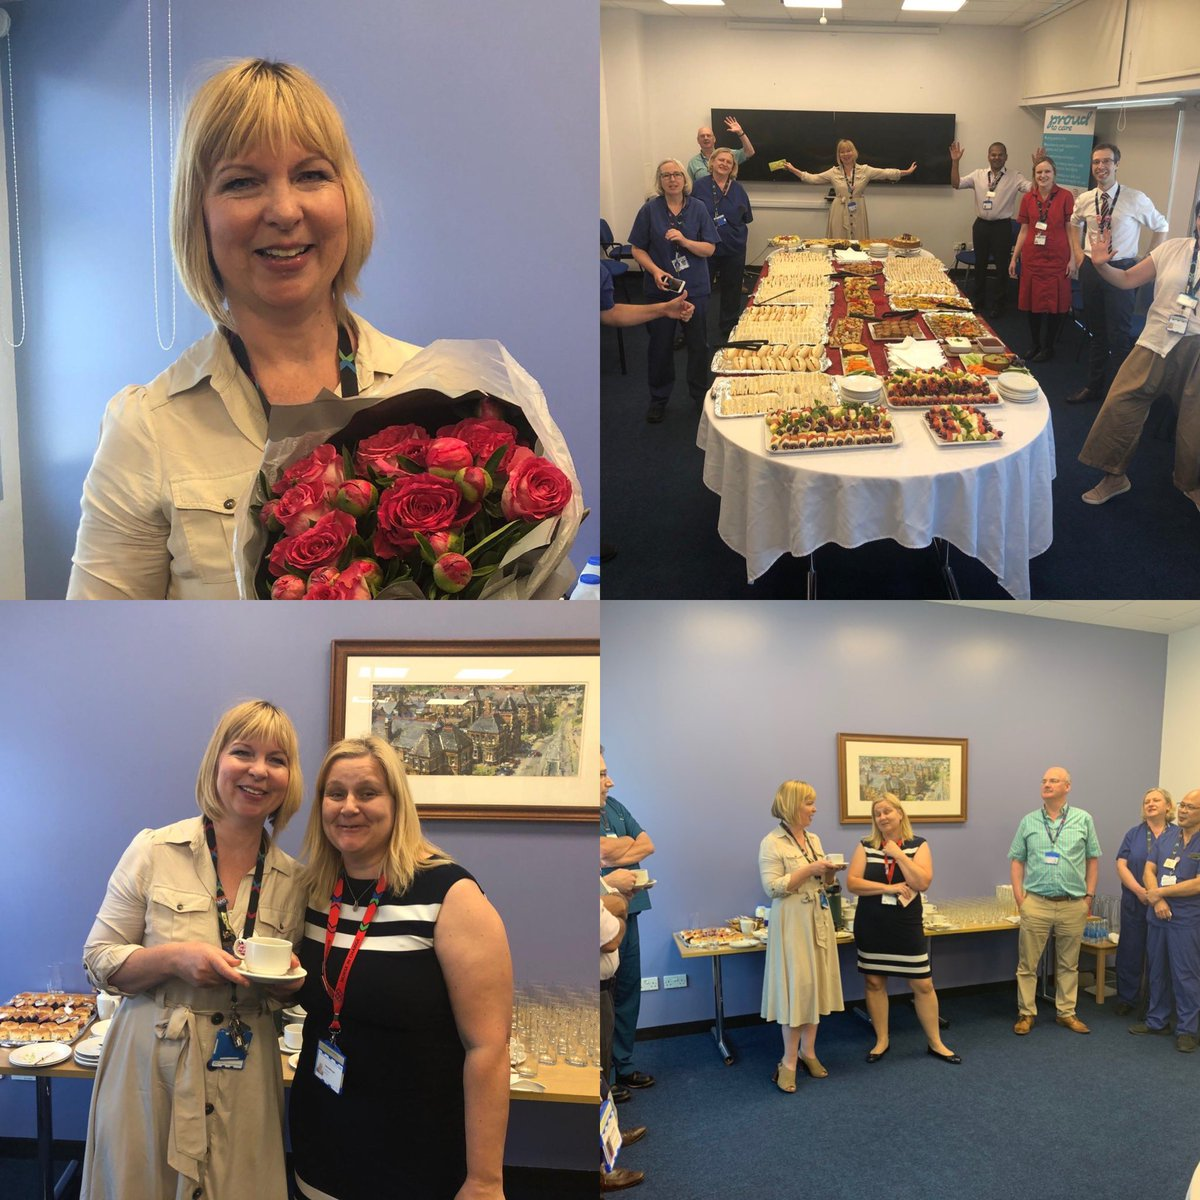 Part one of the amazing @JaneMarieHamil1 leaving party. A BIG loss to the @WestMidHospital team, who will be sorely missed. Looking forward to part two tomorrow #NHShero #legend #whatwillwedowithoutyou @Pauline38937899 @elainemox @theoneNunoCunha @Pippanightinga4